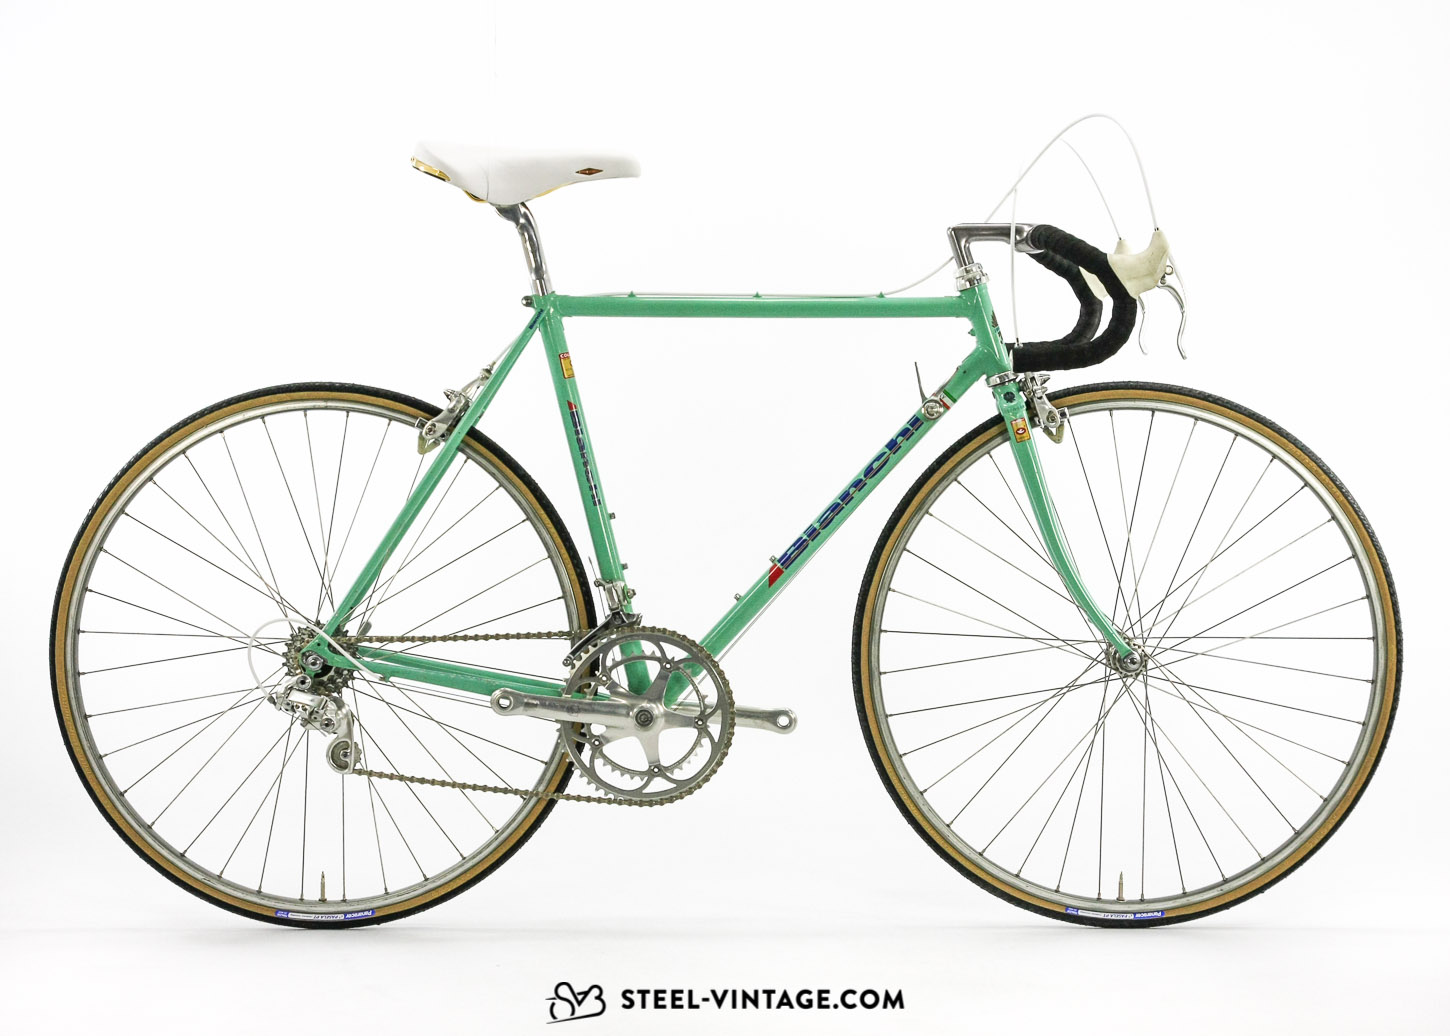 Bianchi Superleggera Classic Racing Bike